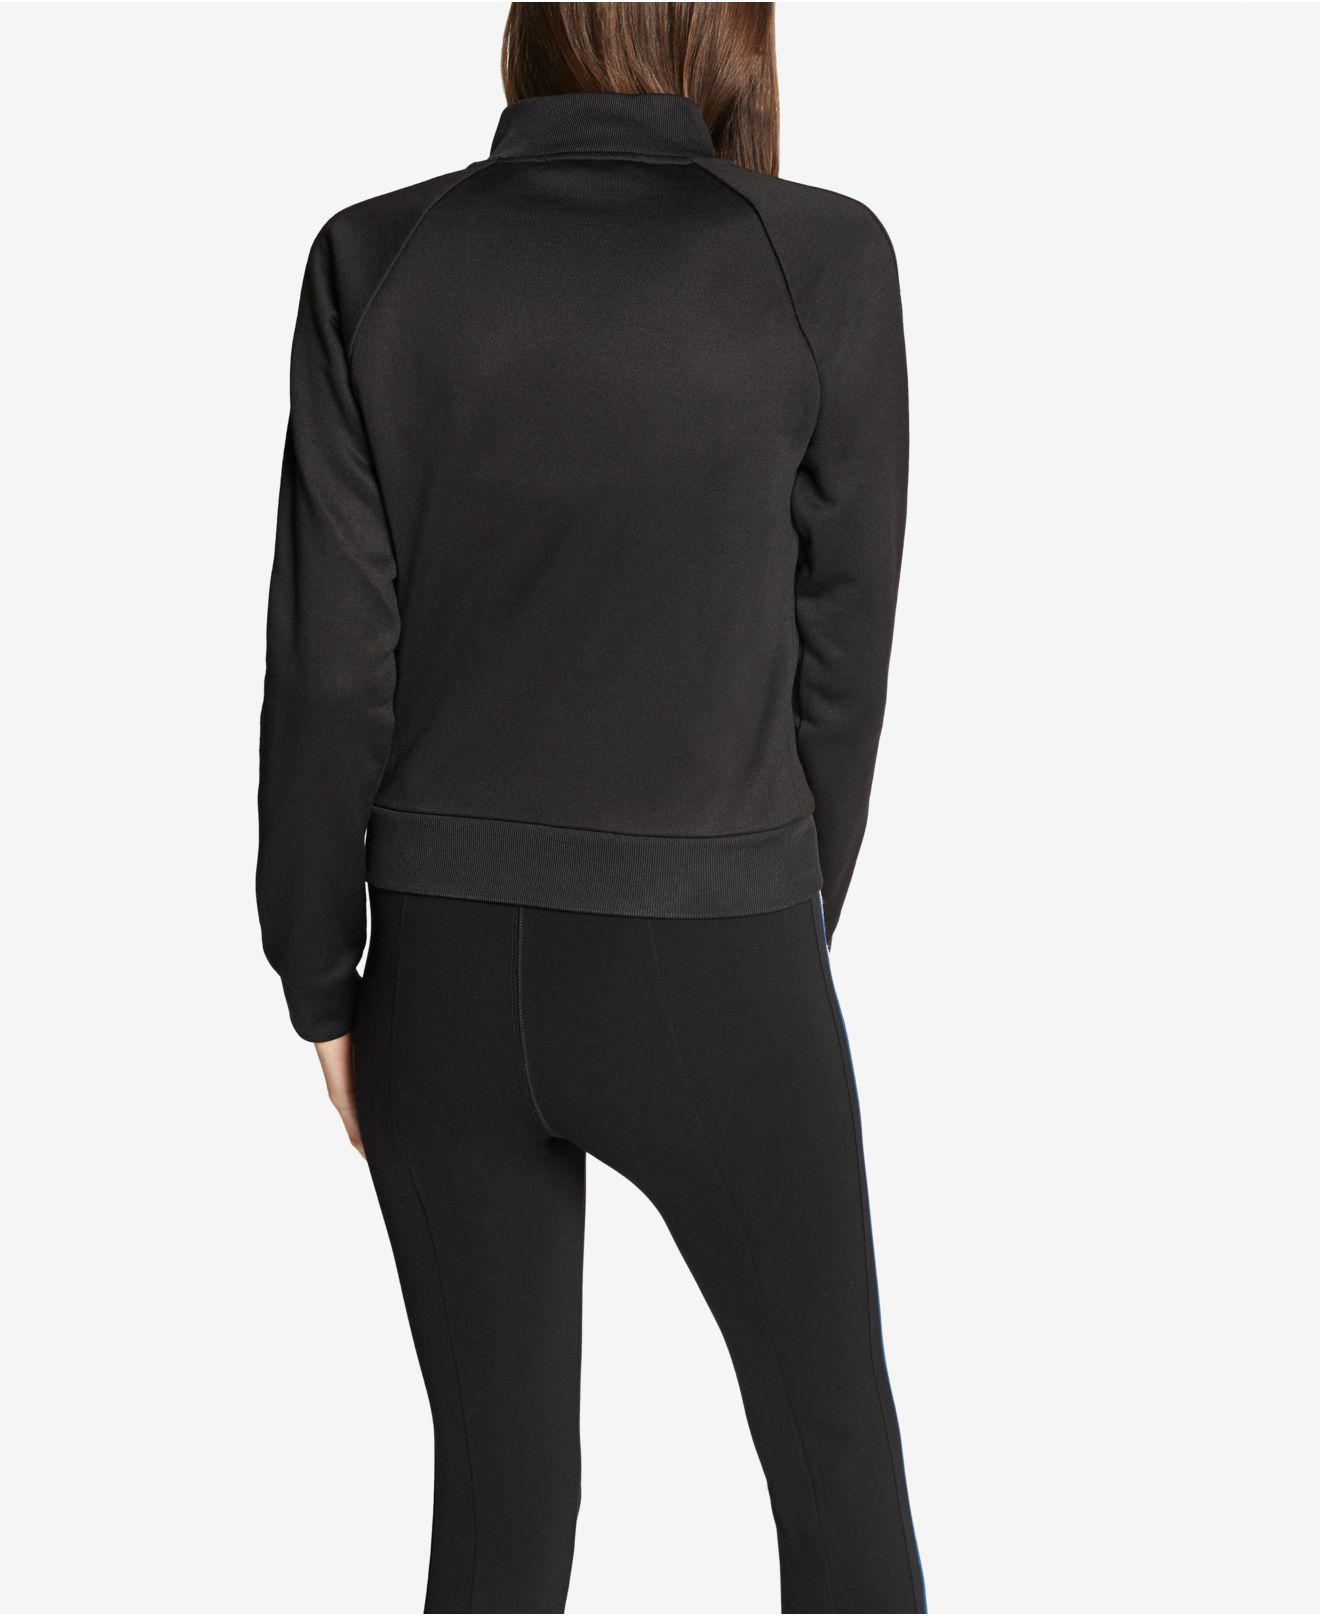 91780a872b1 Lyst - Sanctuary Finishing Line Tracksuit Jacket in Black - Save  35.35353535353535%